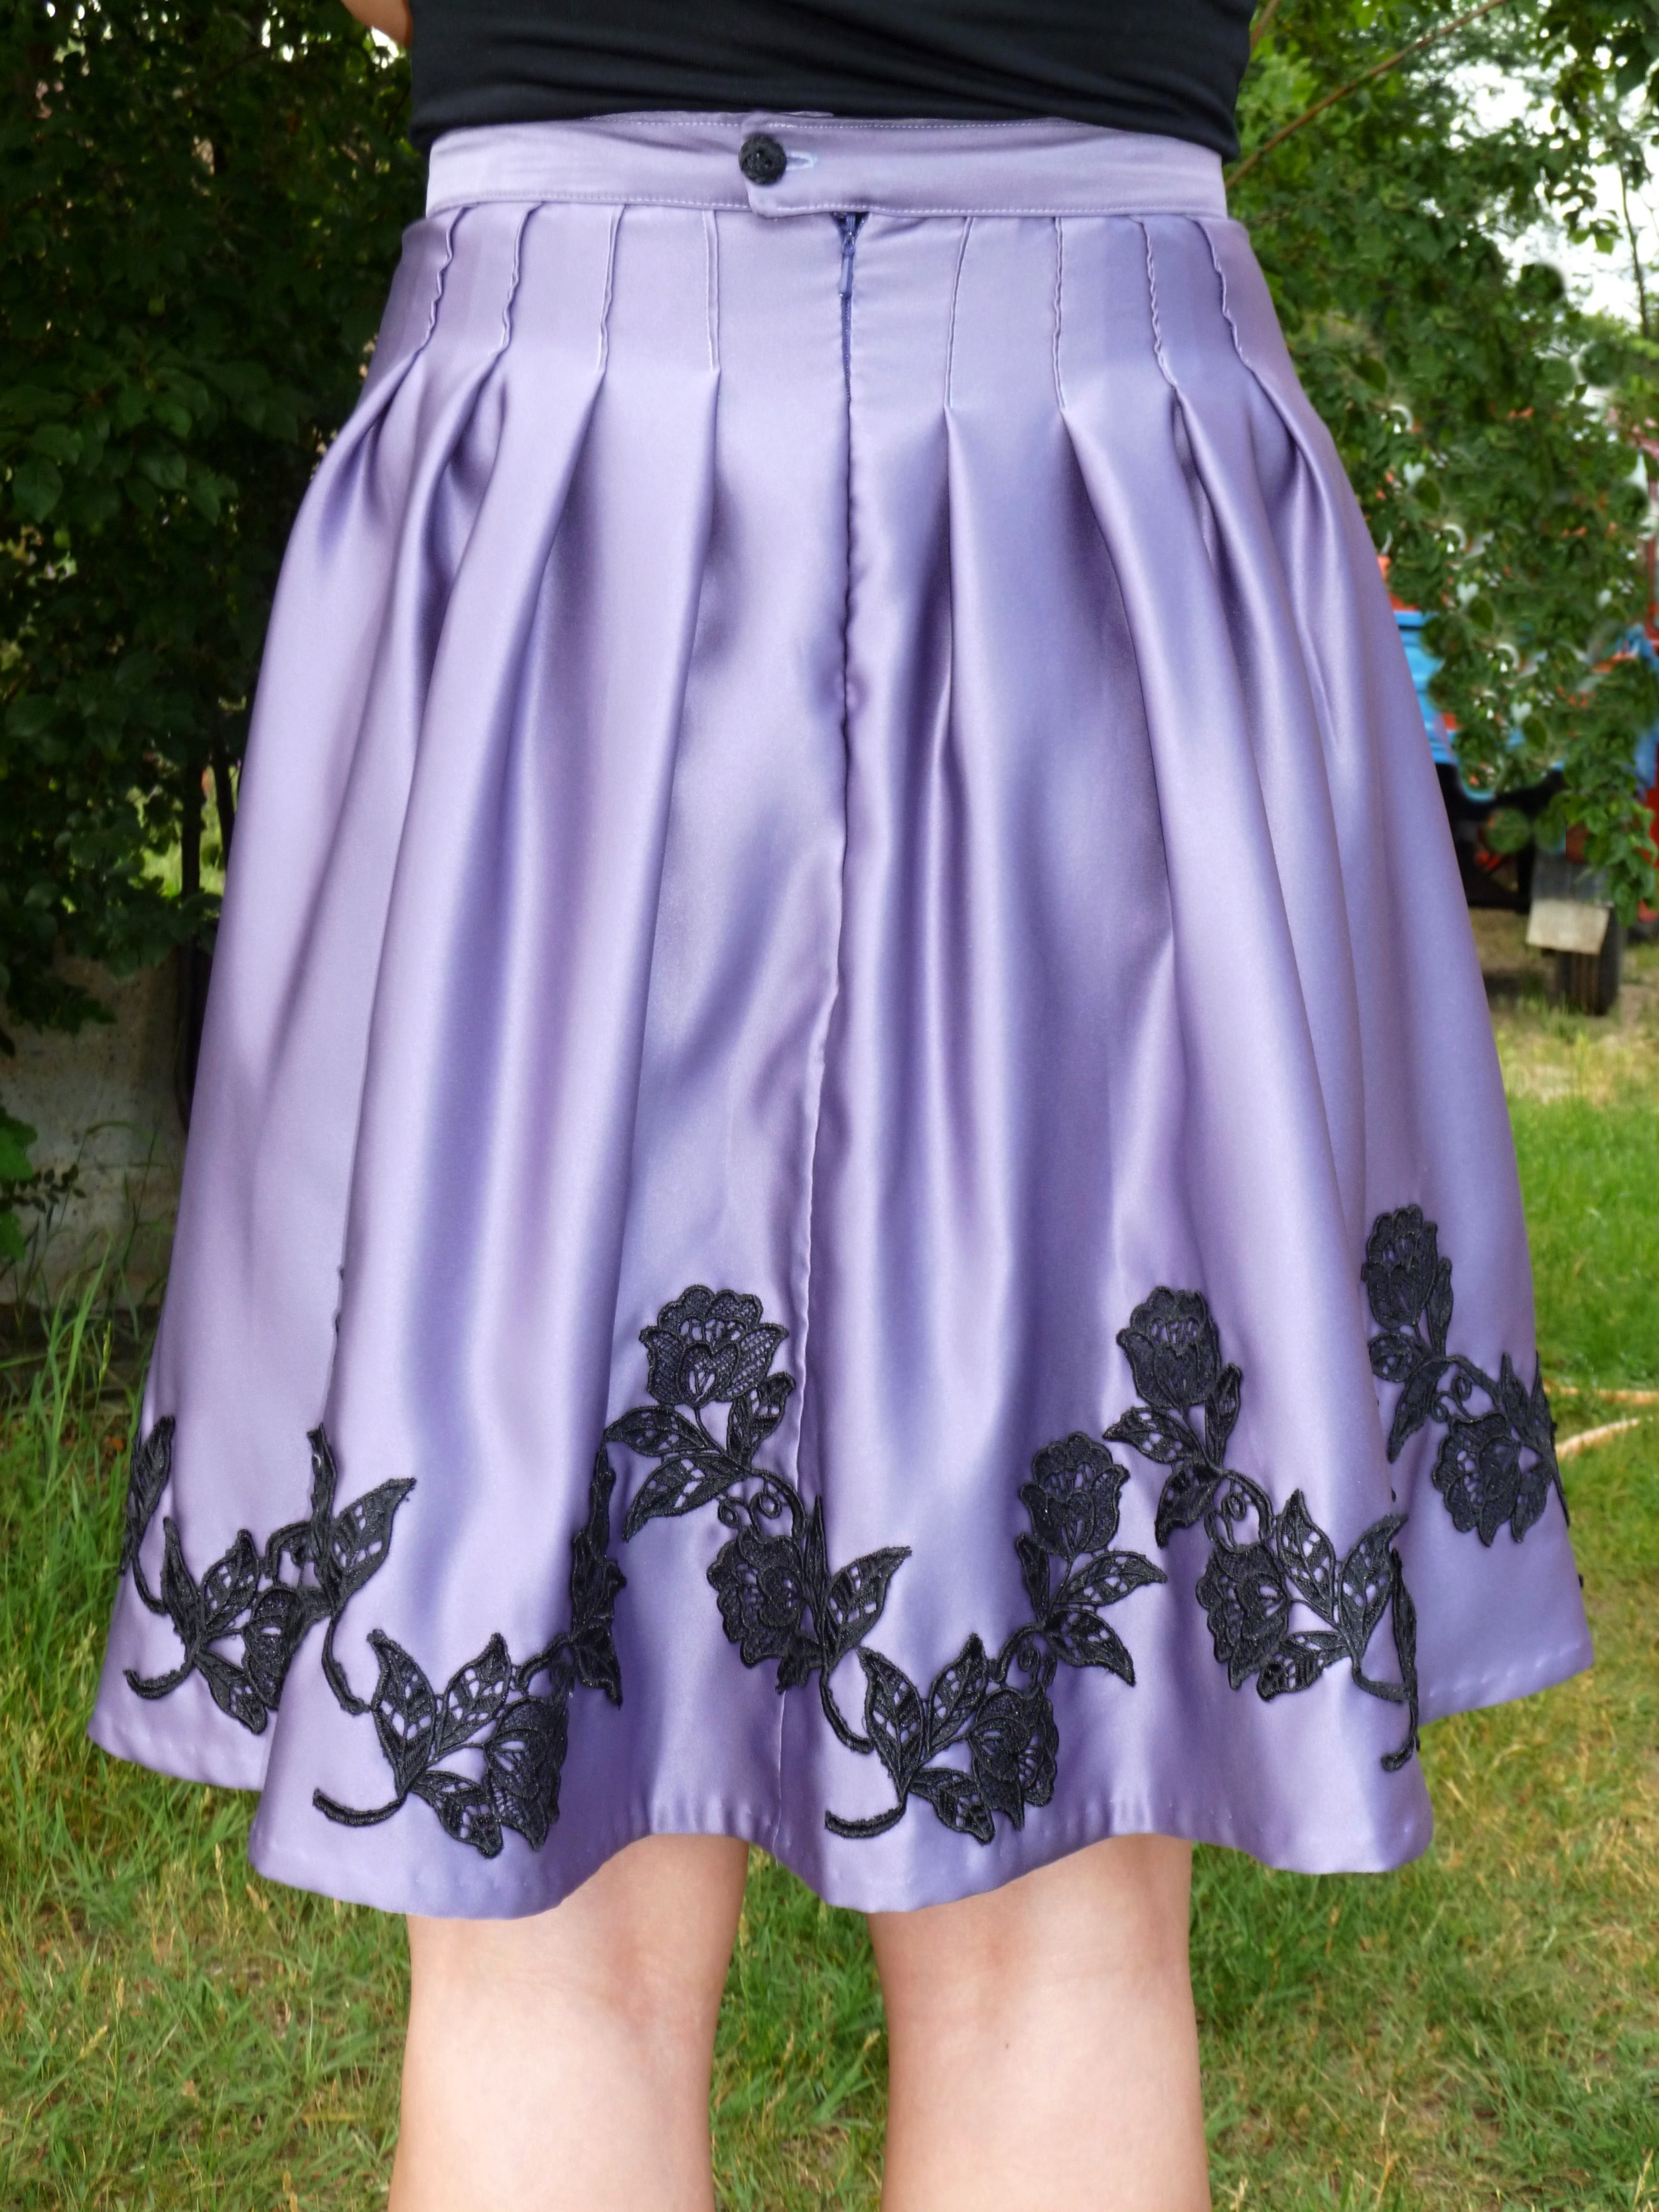 The skirt back with zipper and button closure